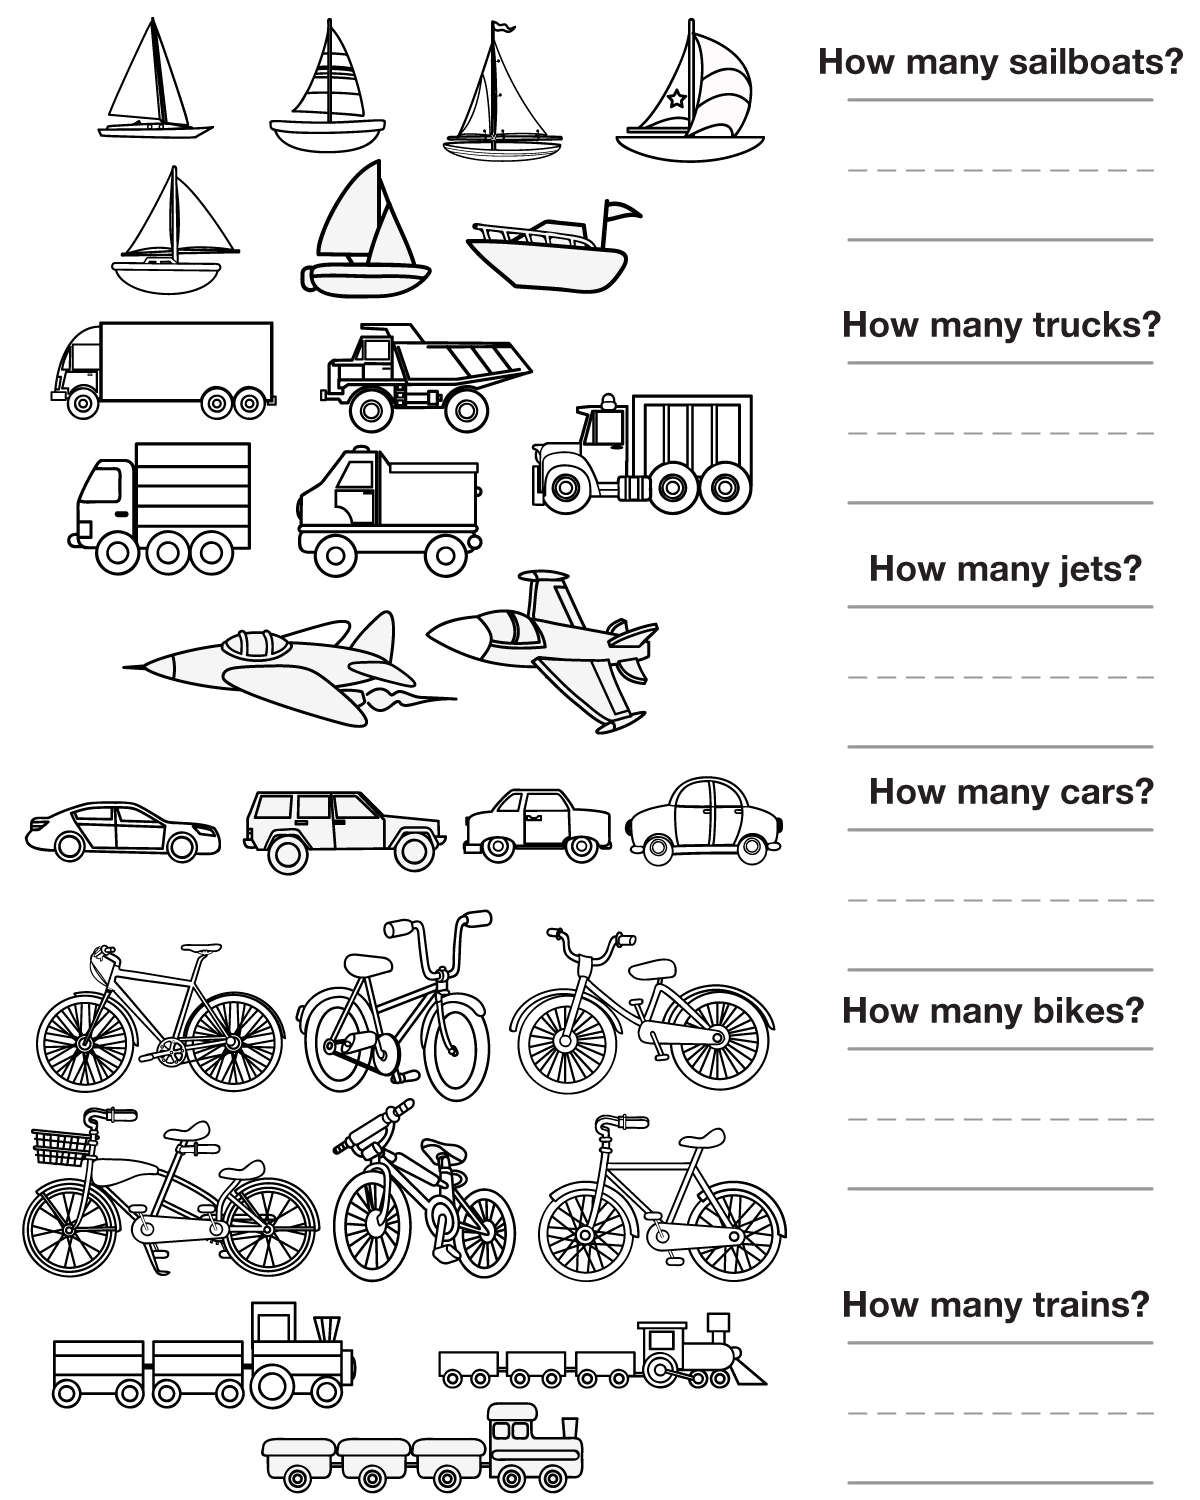 14 Best Images of Worksheets Transportation Matching